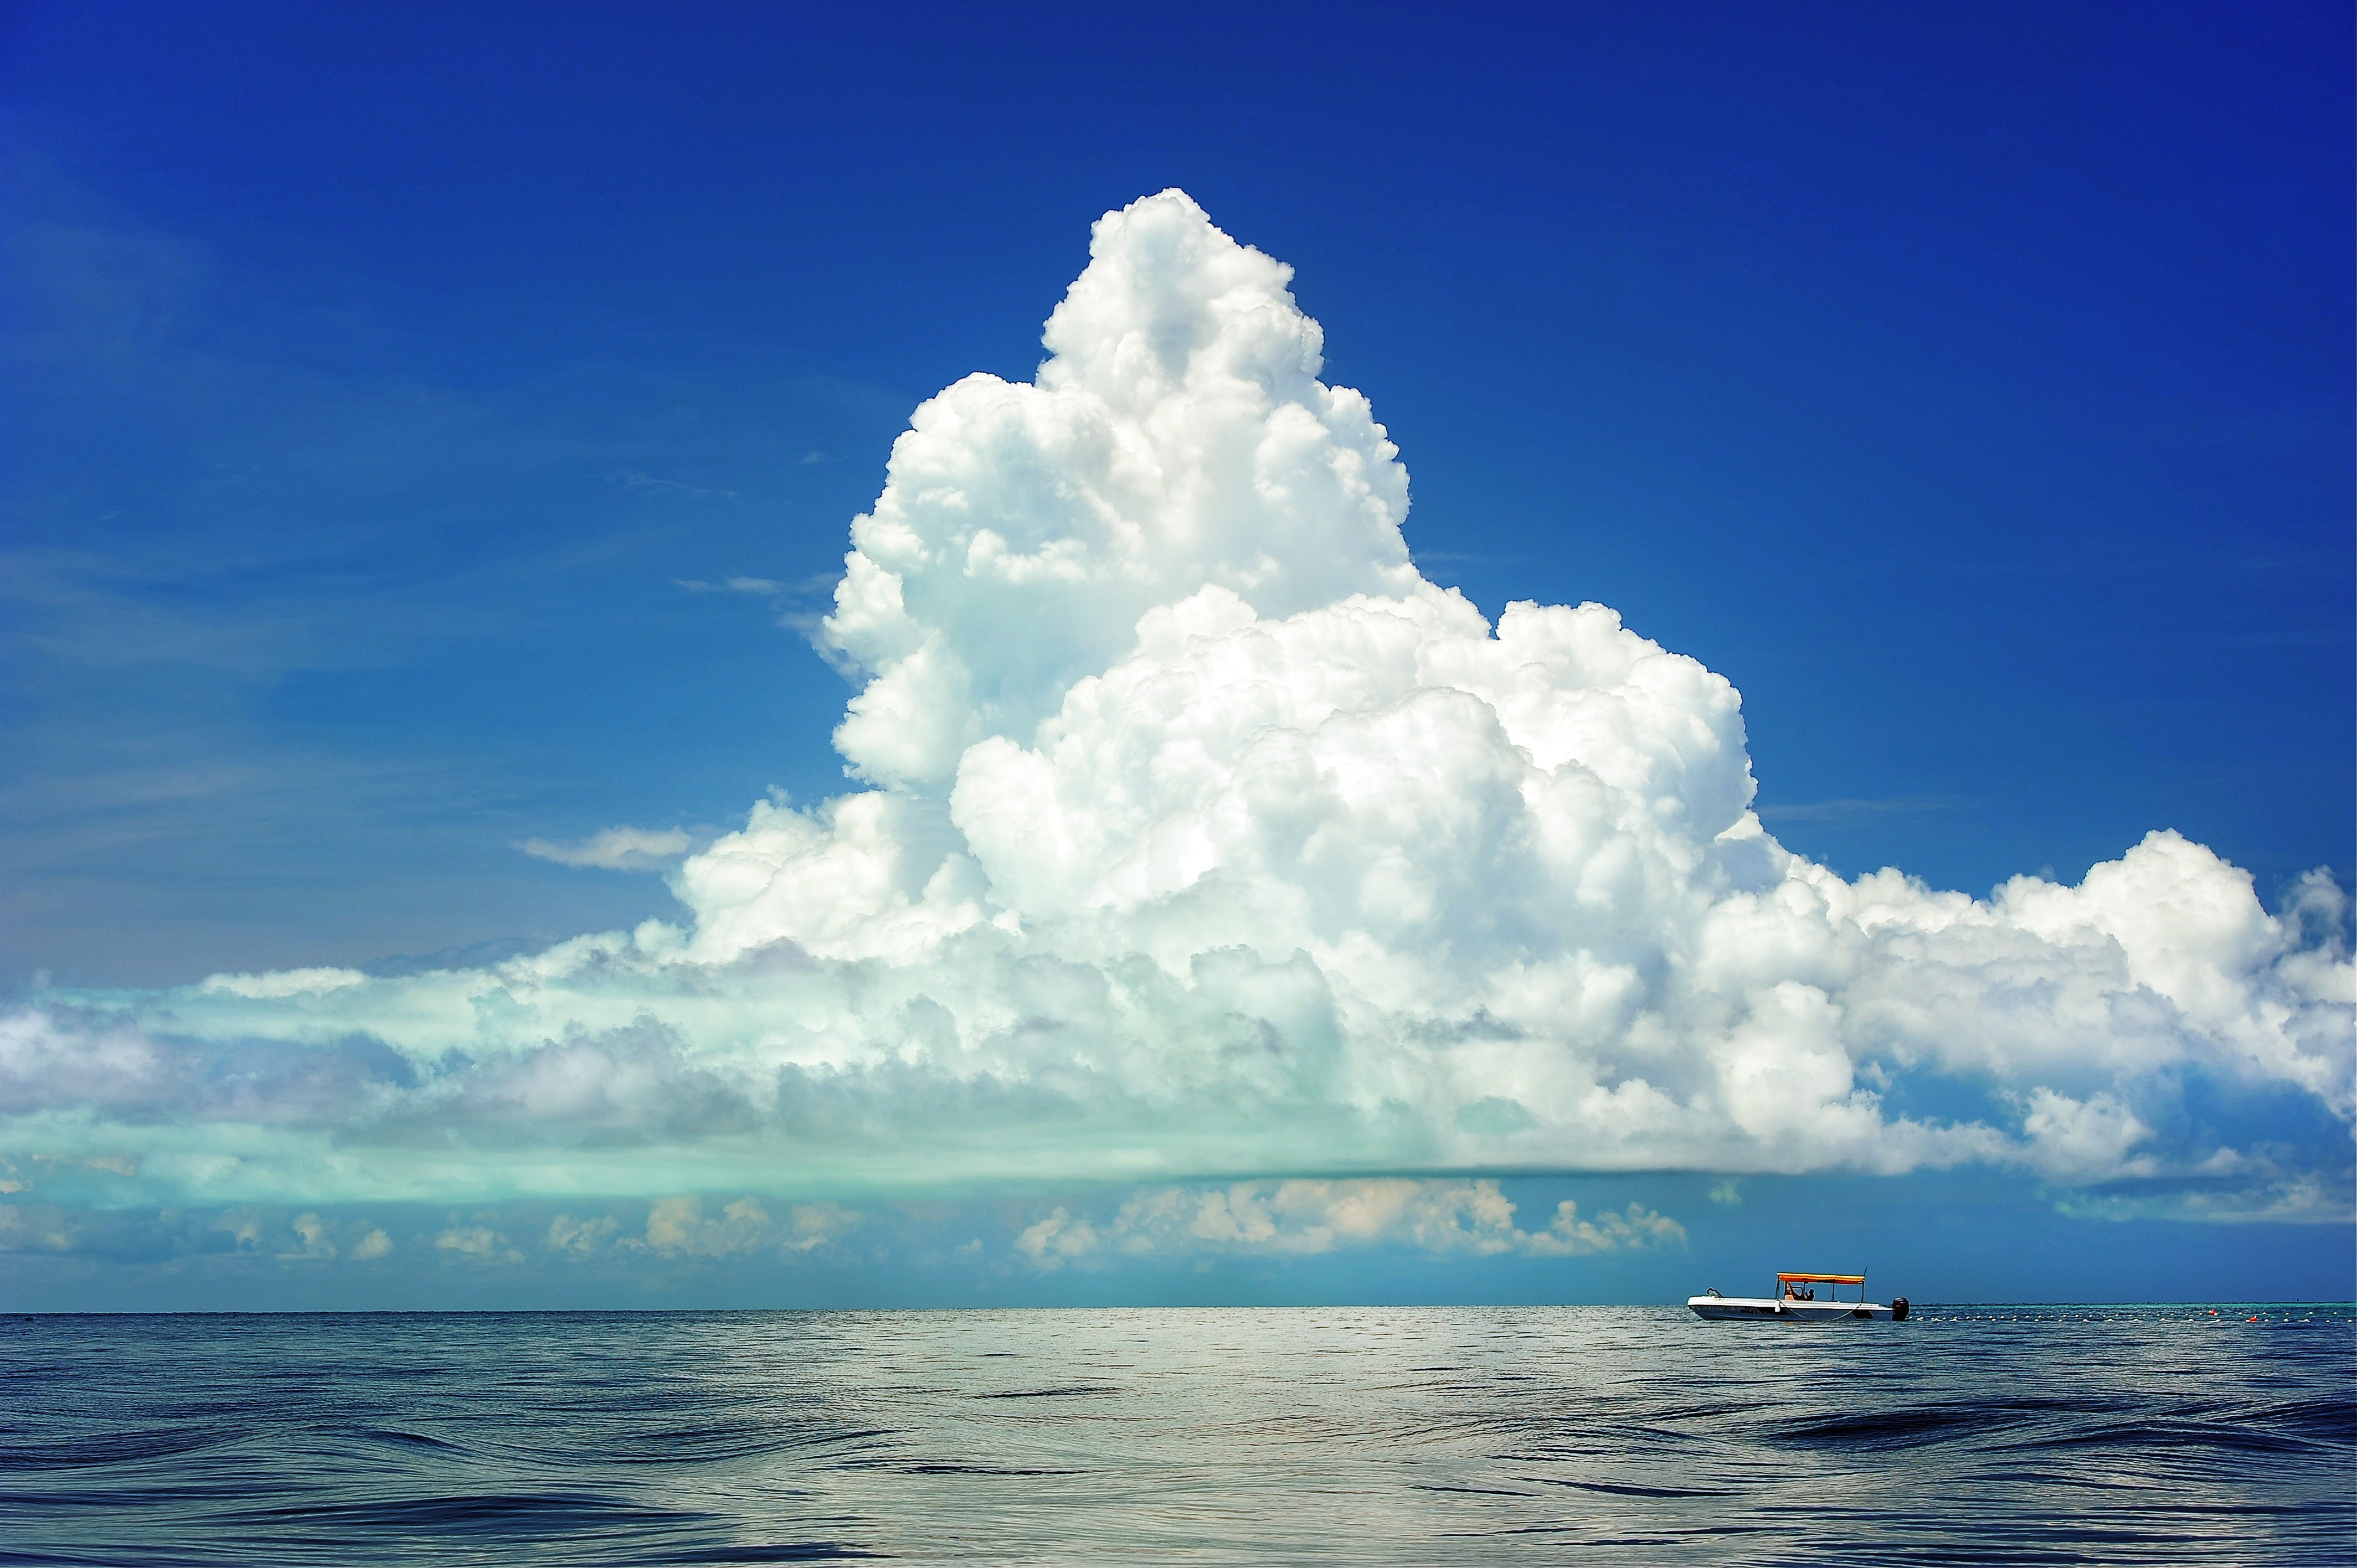 White Boat on Body of Water Under Cloudy Sky during Daytime